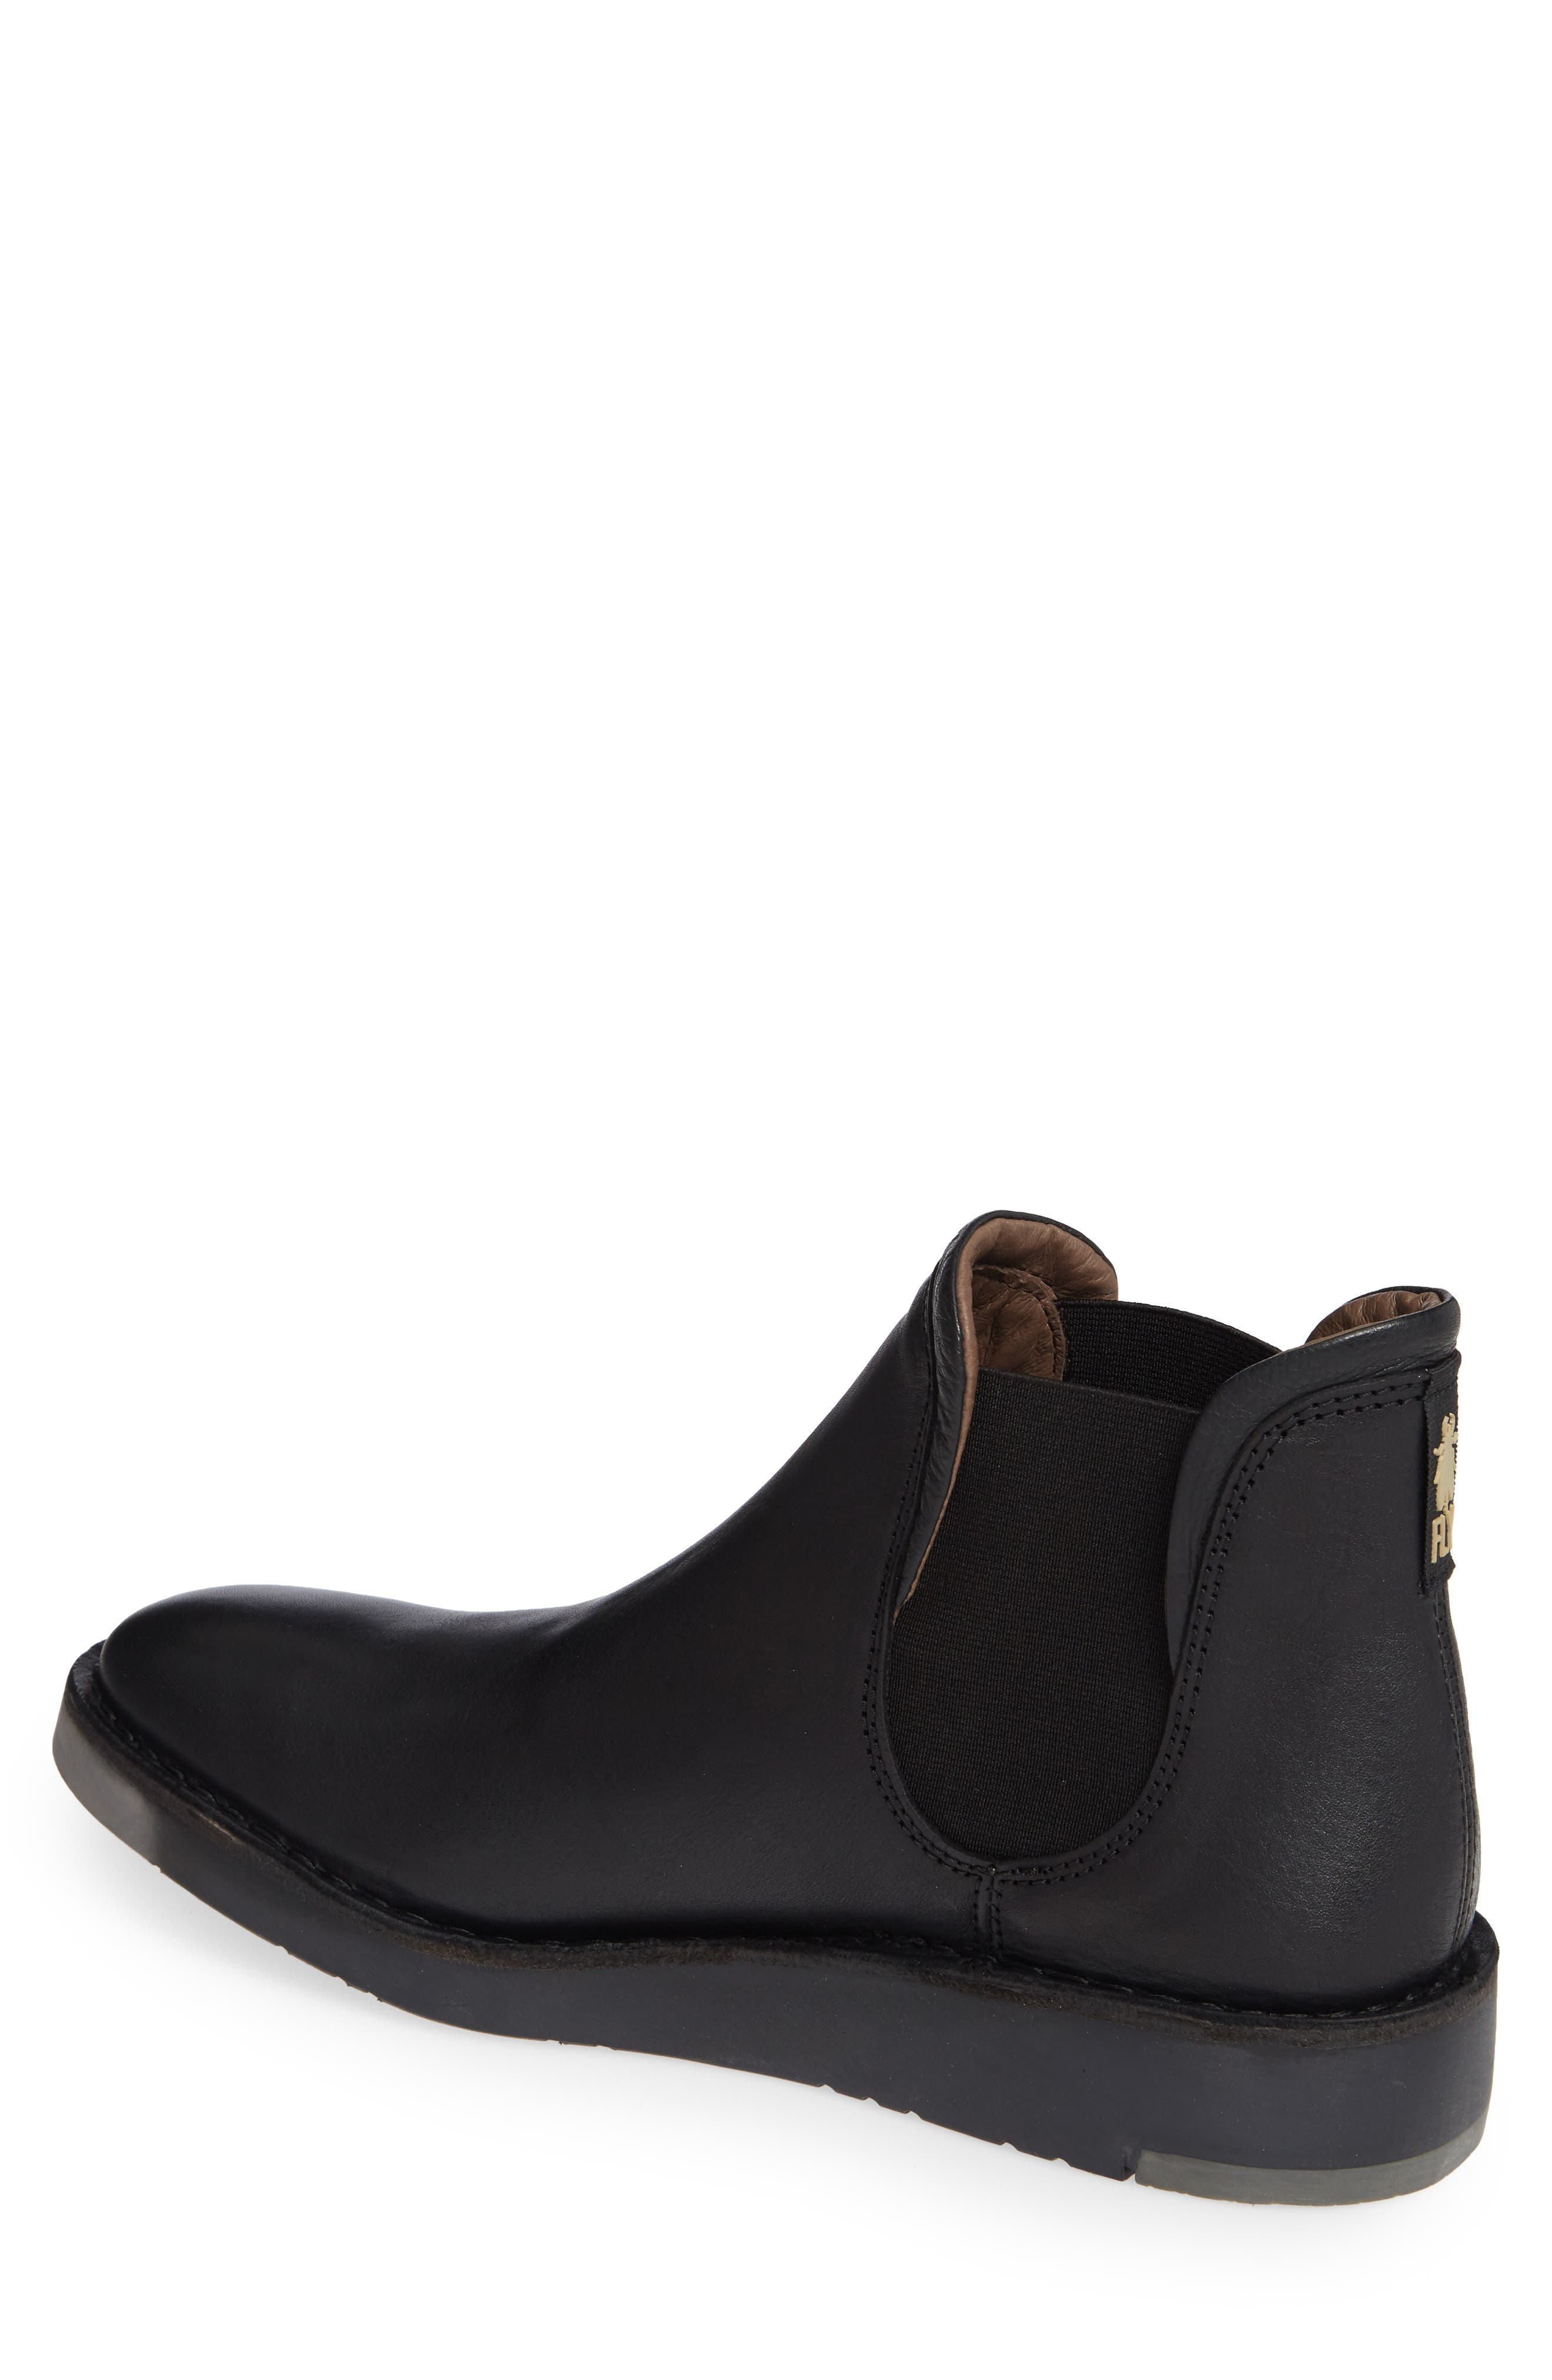 Sern Water Resistant Chelsea Boot,                             Alternate thumbnail 2, color,                             BLACK APSO